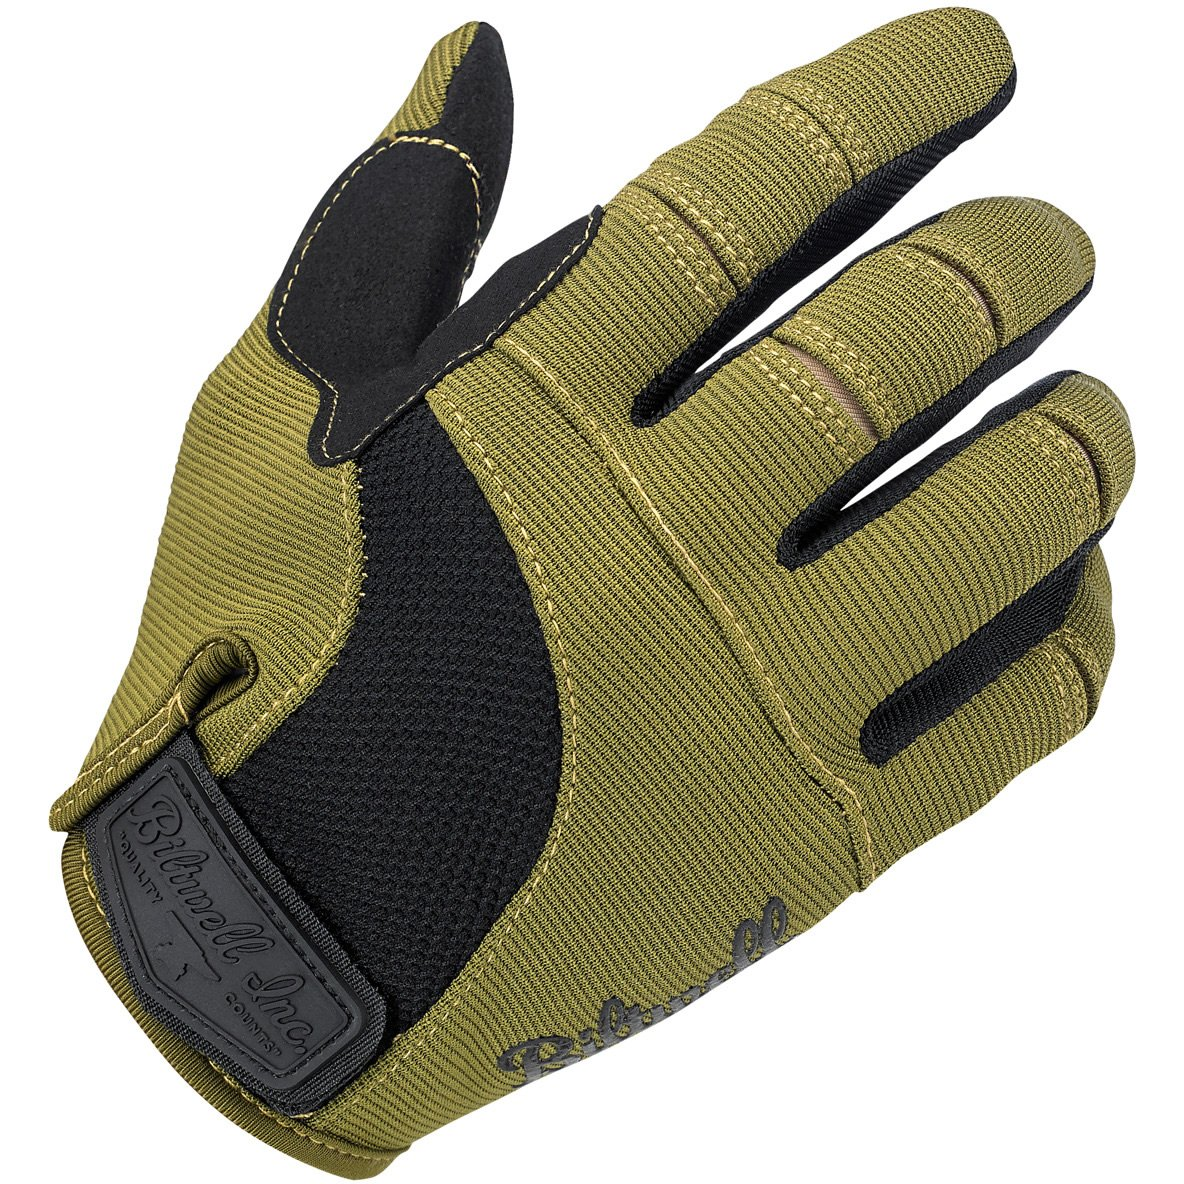 Biltwell Moto Gloves Olive Black